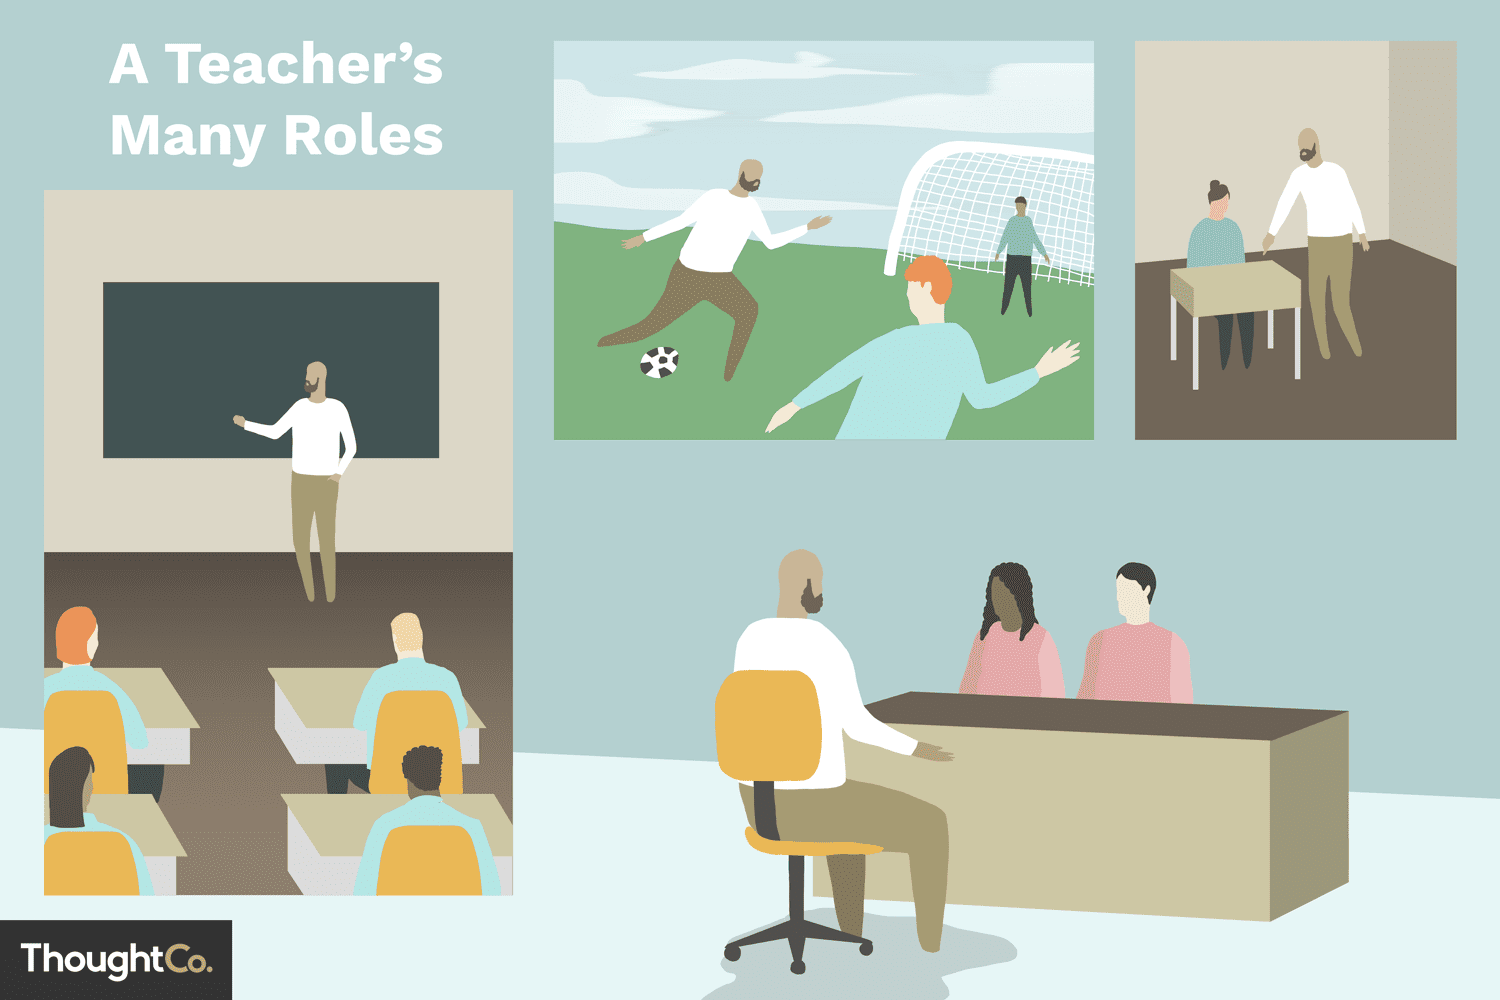 The Role Of An Interior Designer: What Is The Role Of A Teacher?